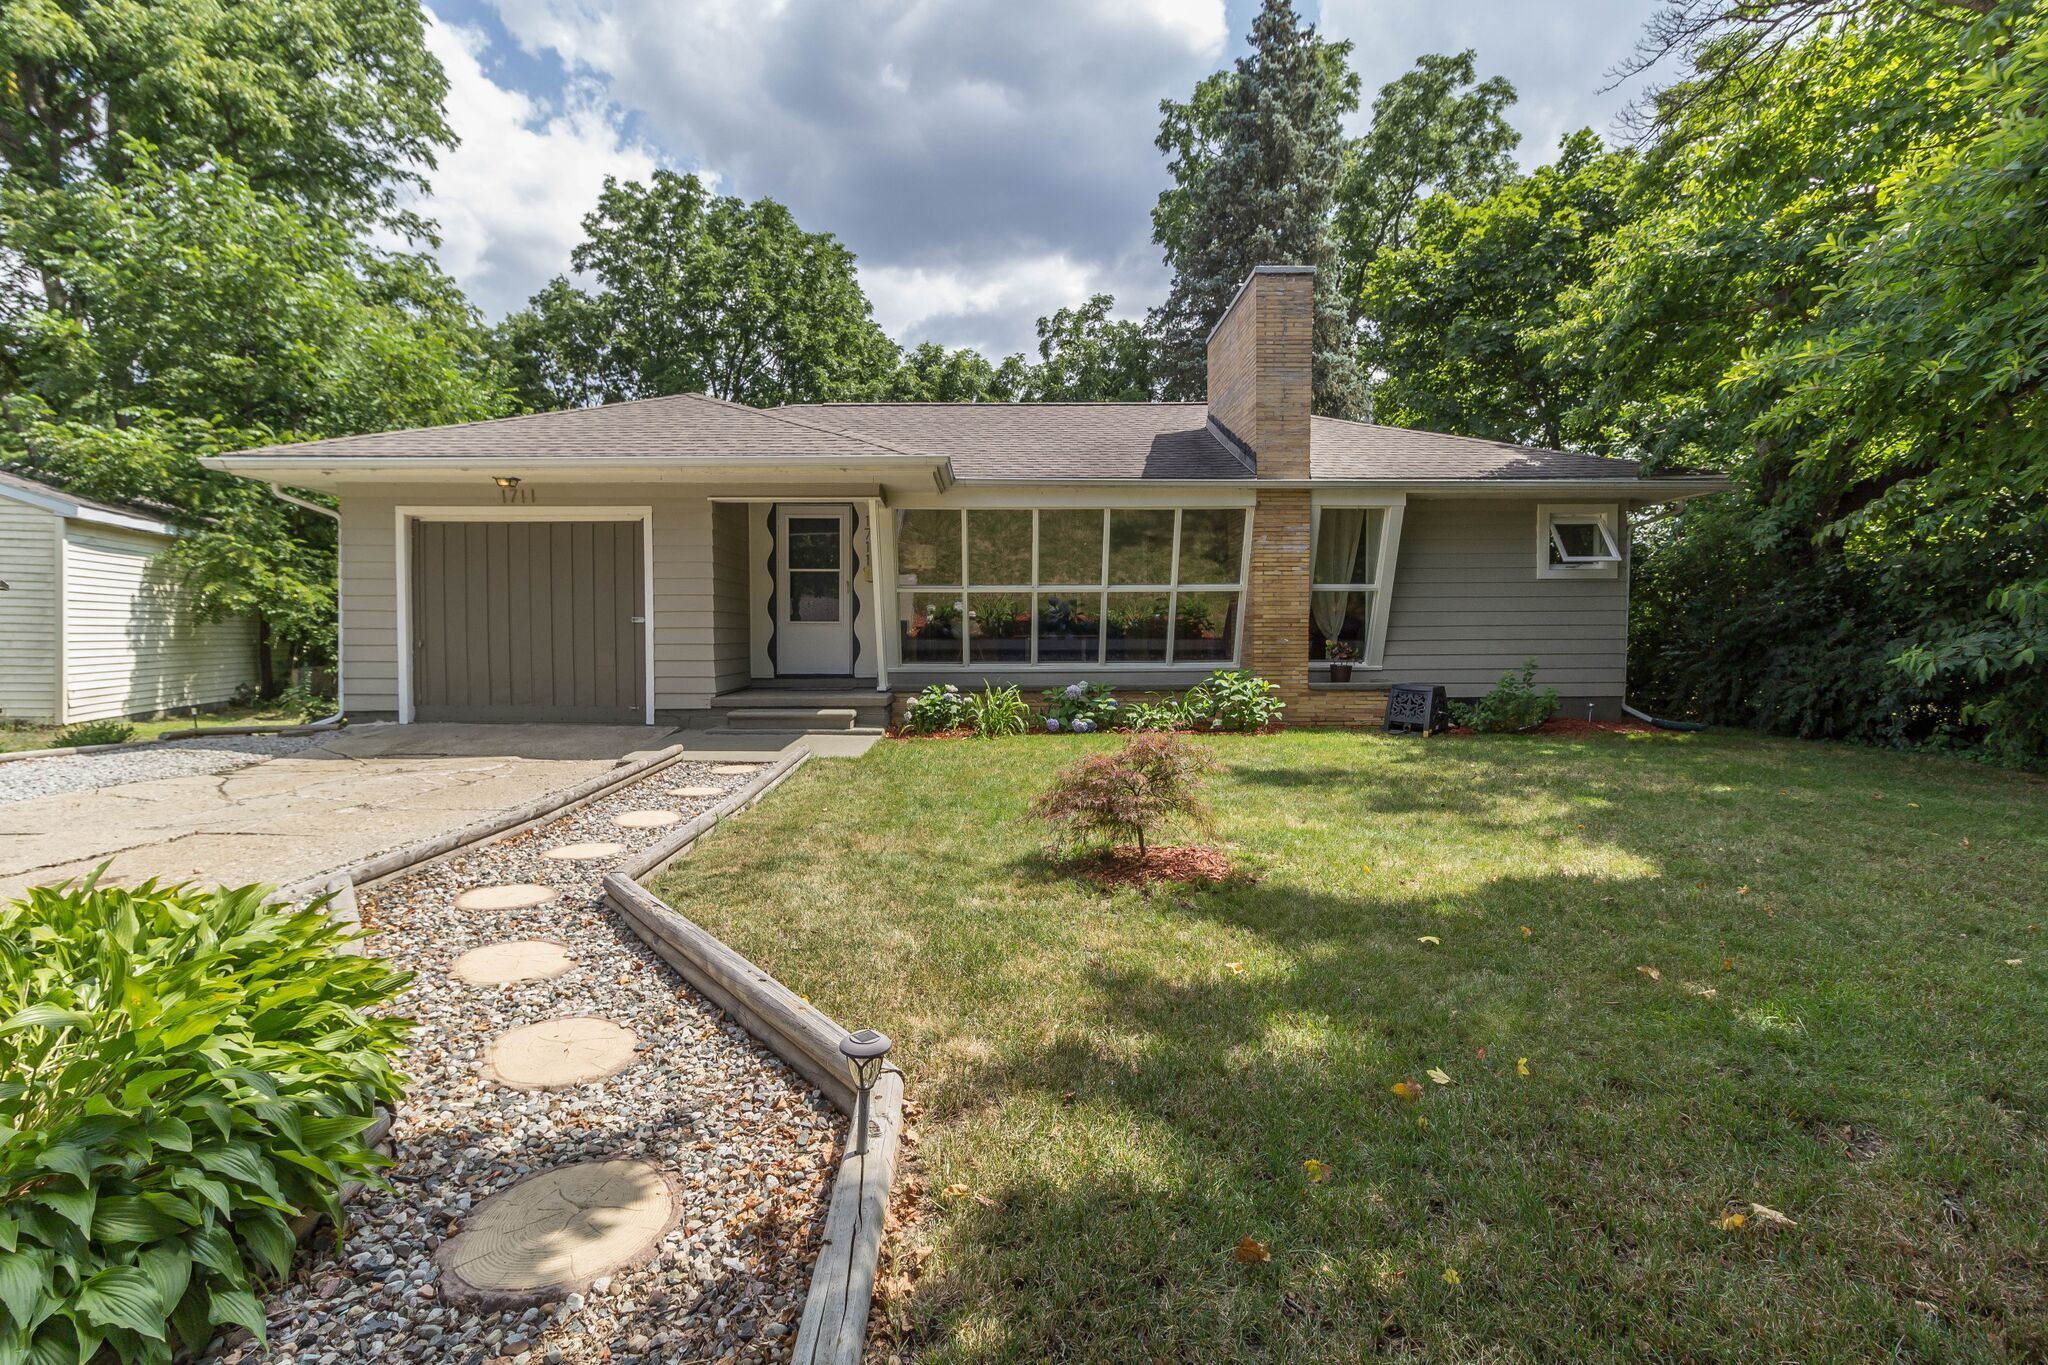 homes for sale in lansing mi area